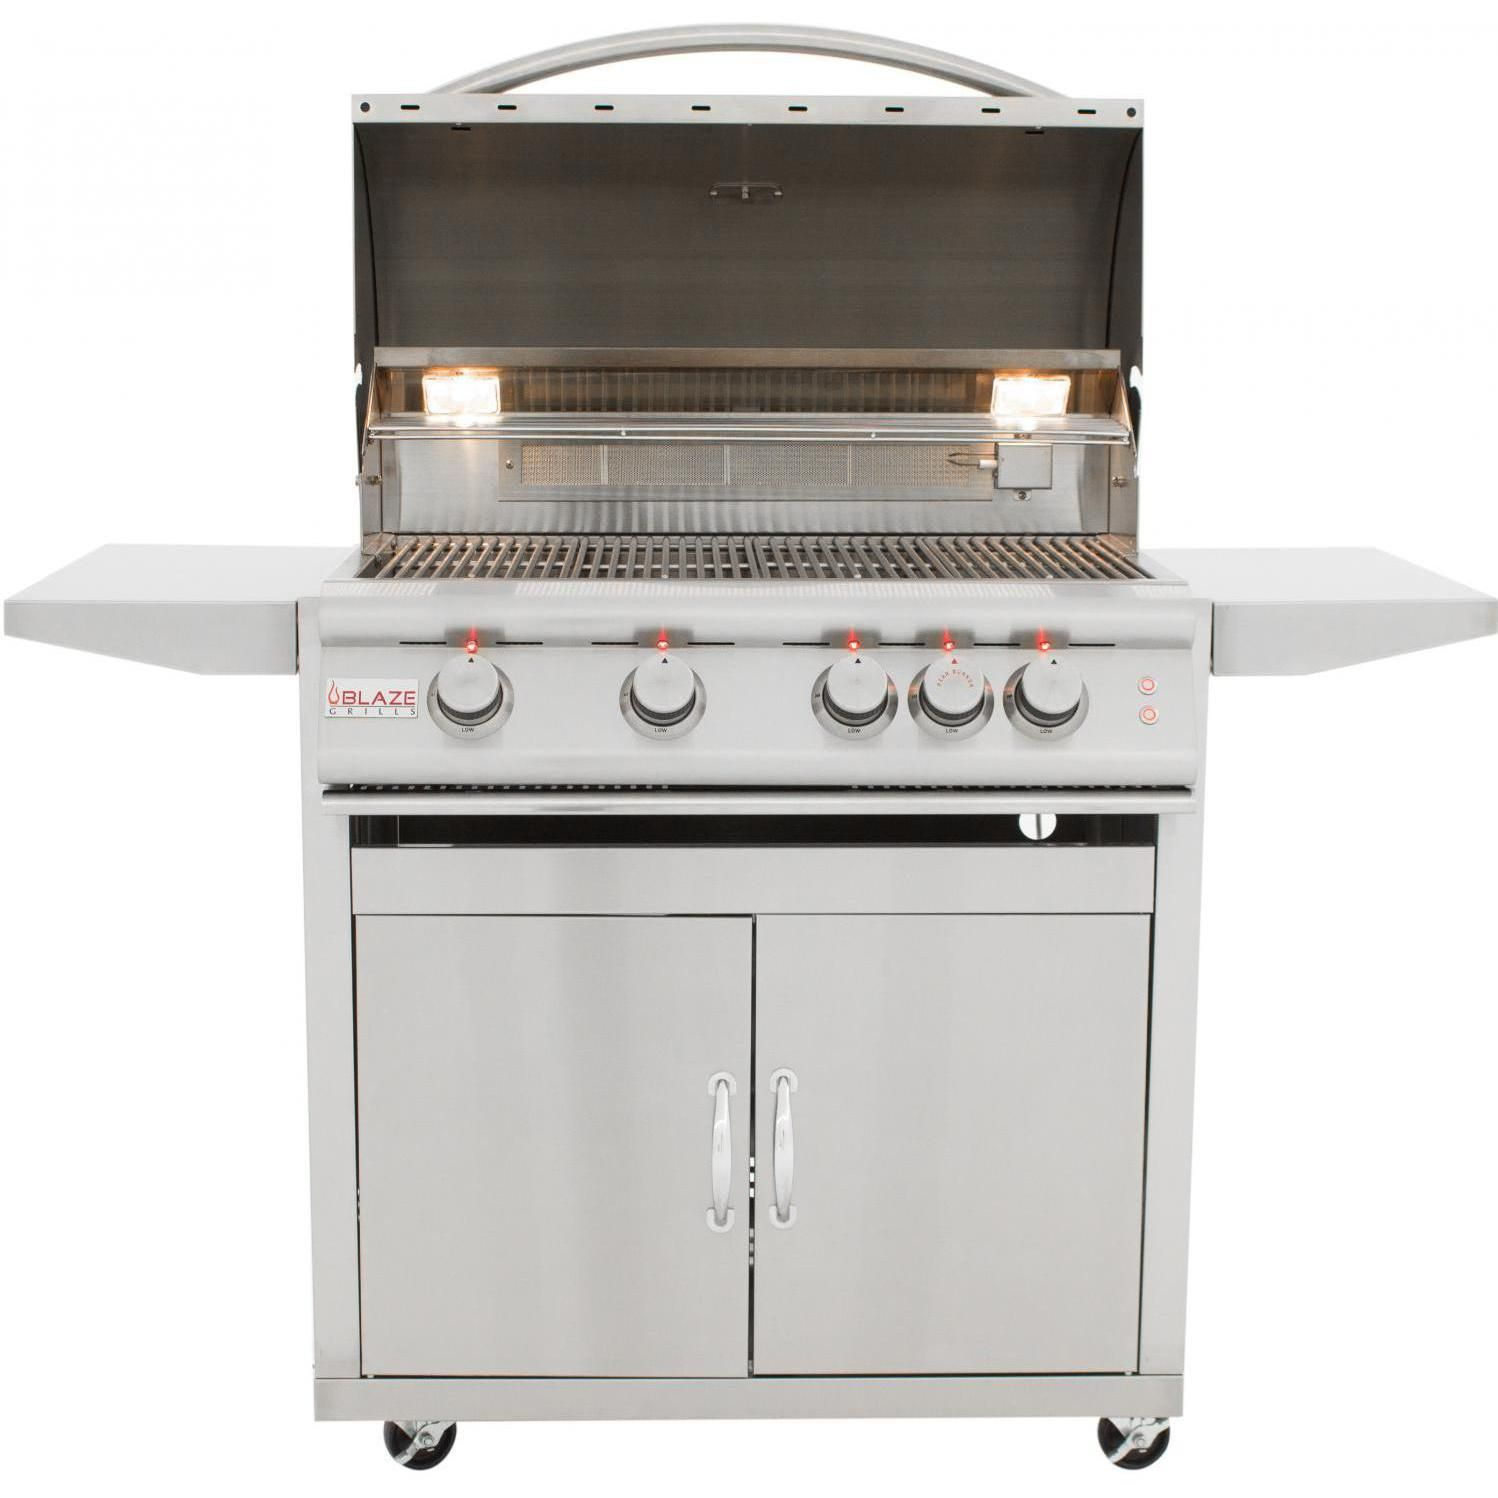 Blaze Outdoor Products Lte 32 4 Burner Propane Gas Grill With Rear Infrared Burner Grill Lights Blz 4lte2 Lp Blz 4lte2 Lp Blz 4 Cart Propane Gas Grill Outdoor Kitchen Cabinets Gas Bbq